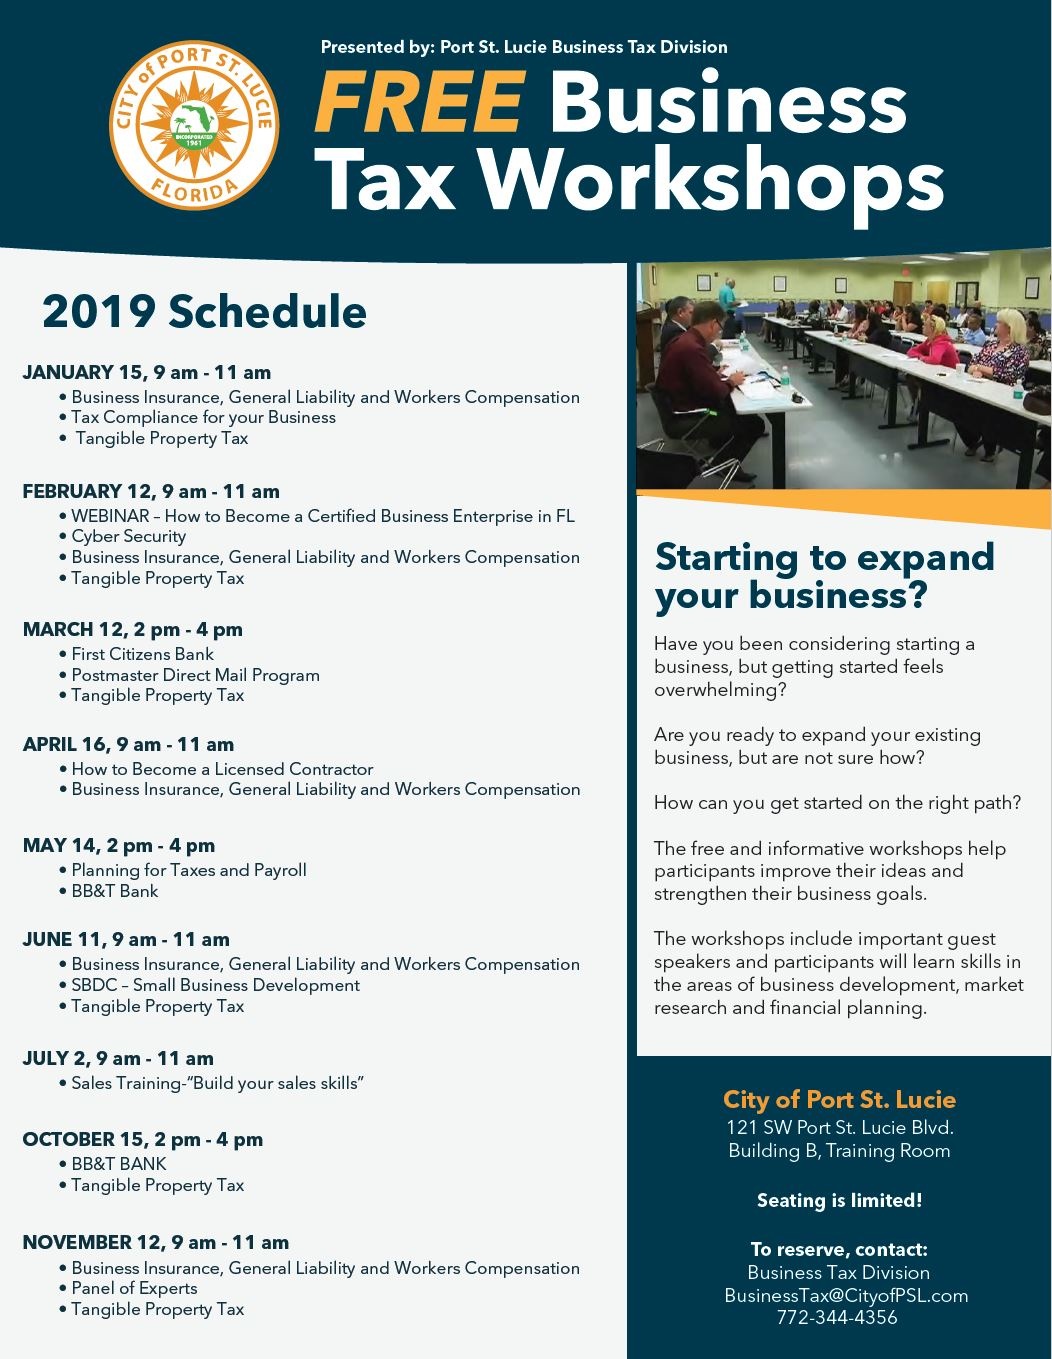 Free Business Tax Workshops 2019 Schedule